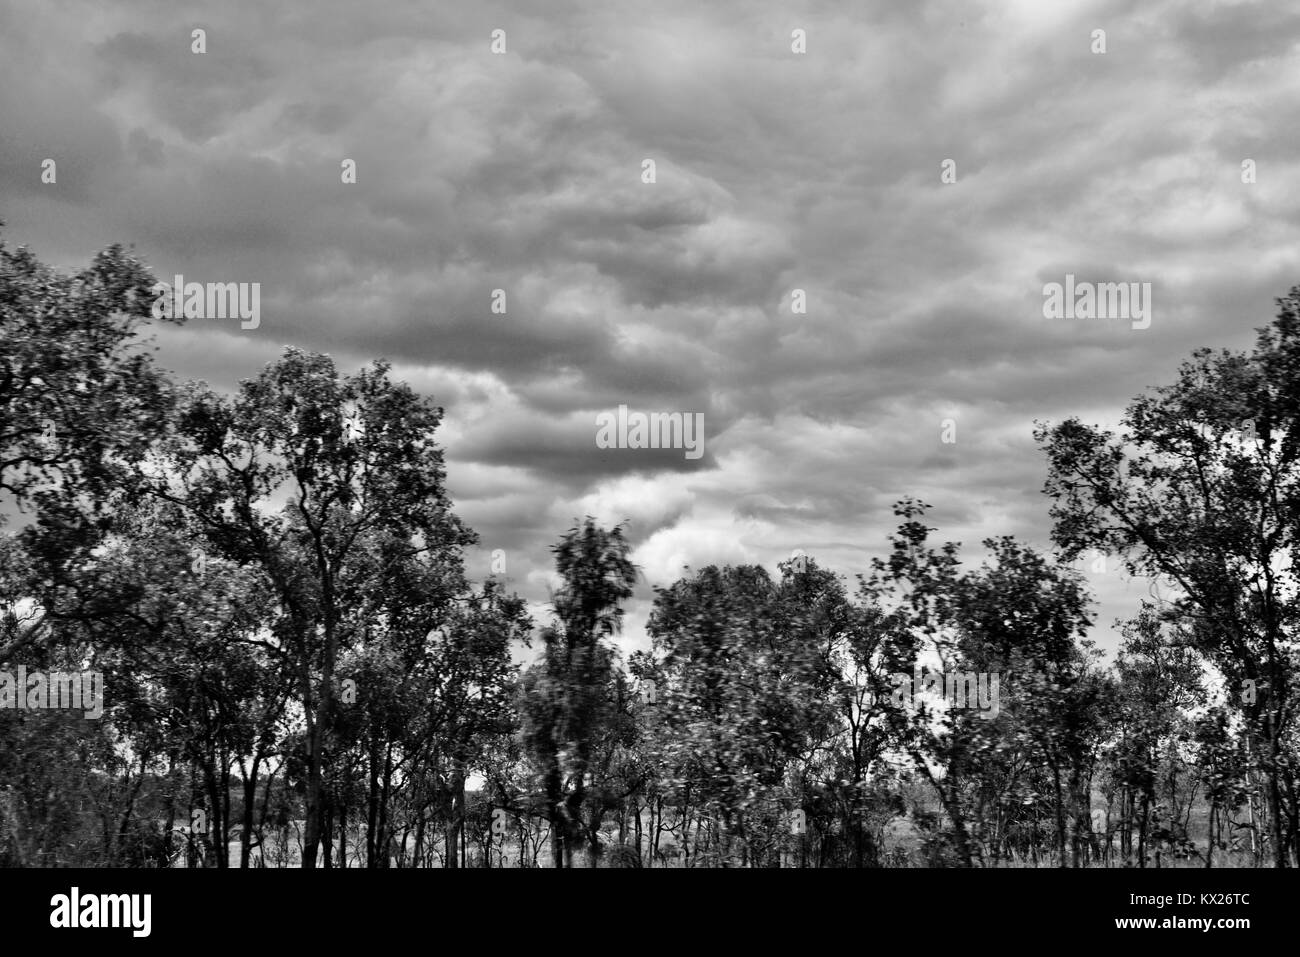 Dramatic black and white images of Australia, december, Queensland, Australia Stock Photo